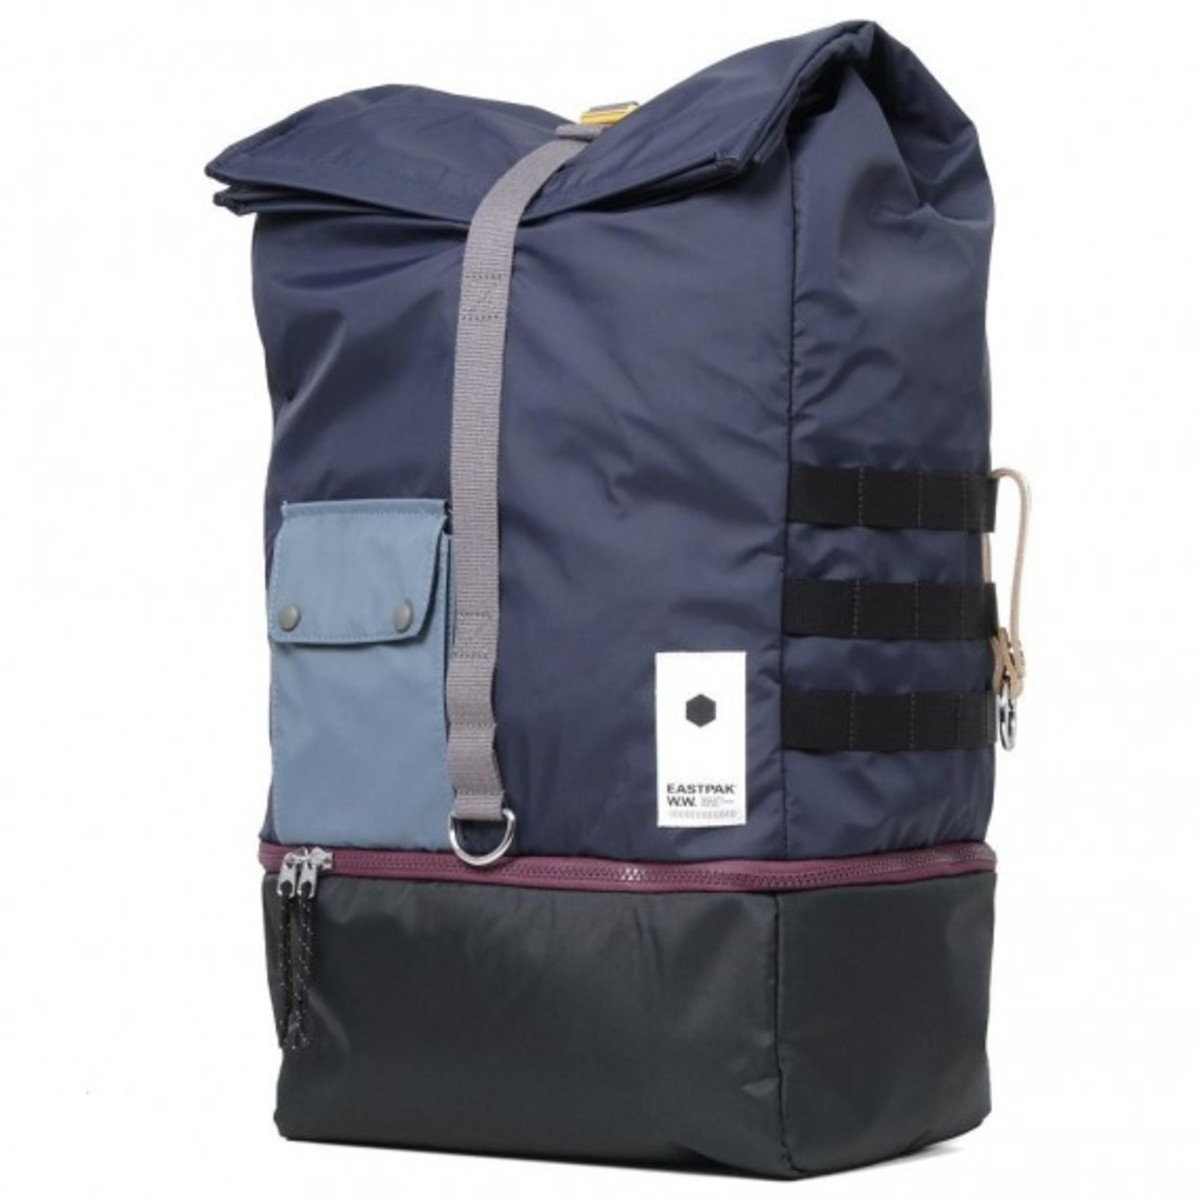 wood-wood-eastpak-collection-available-19